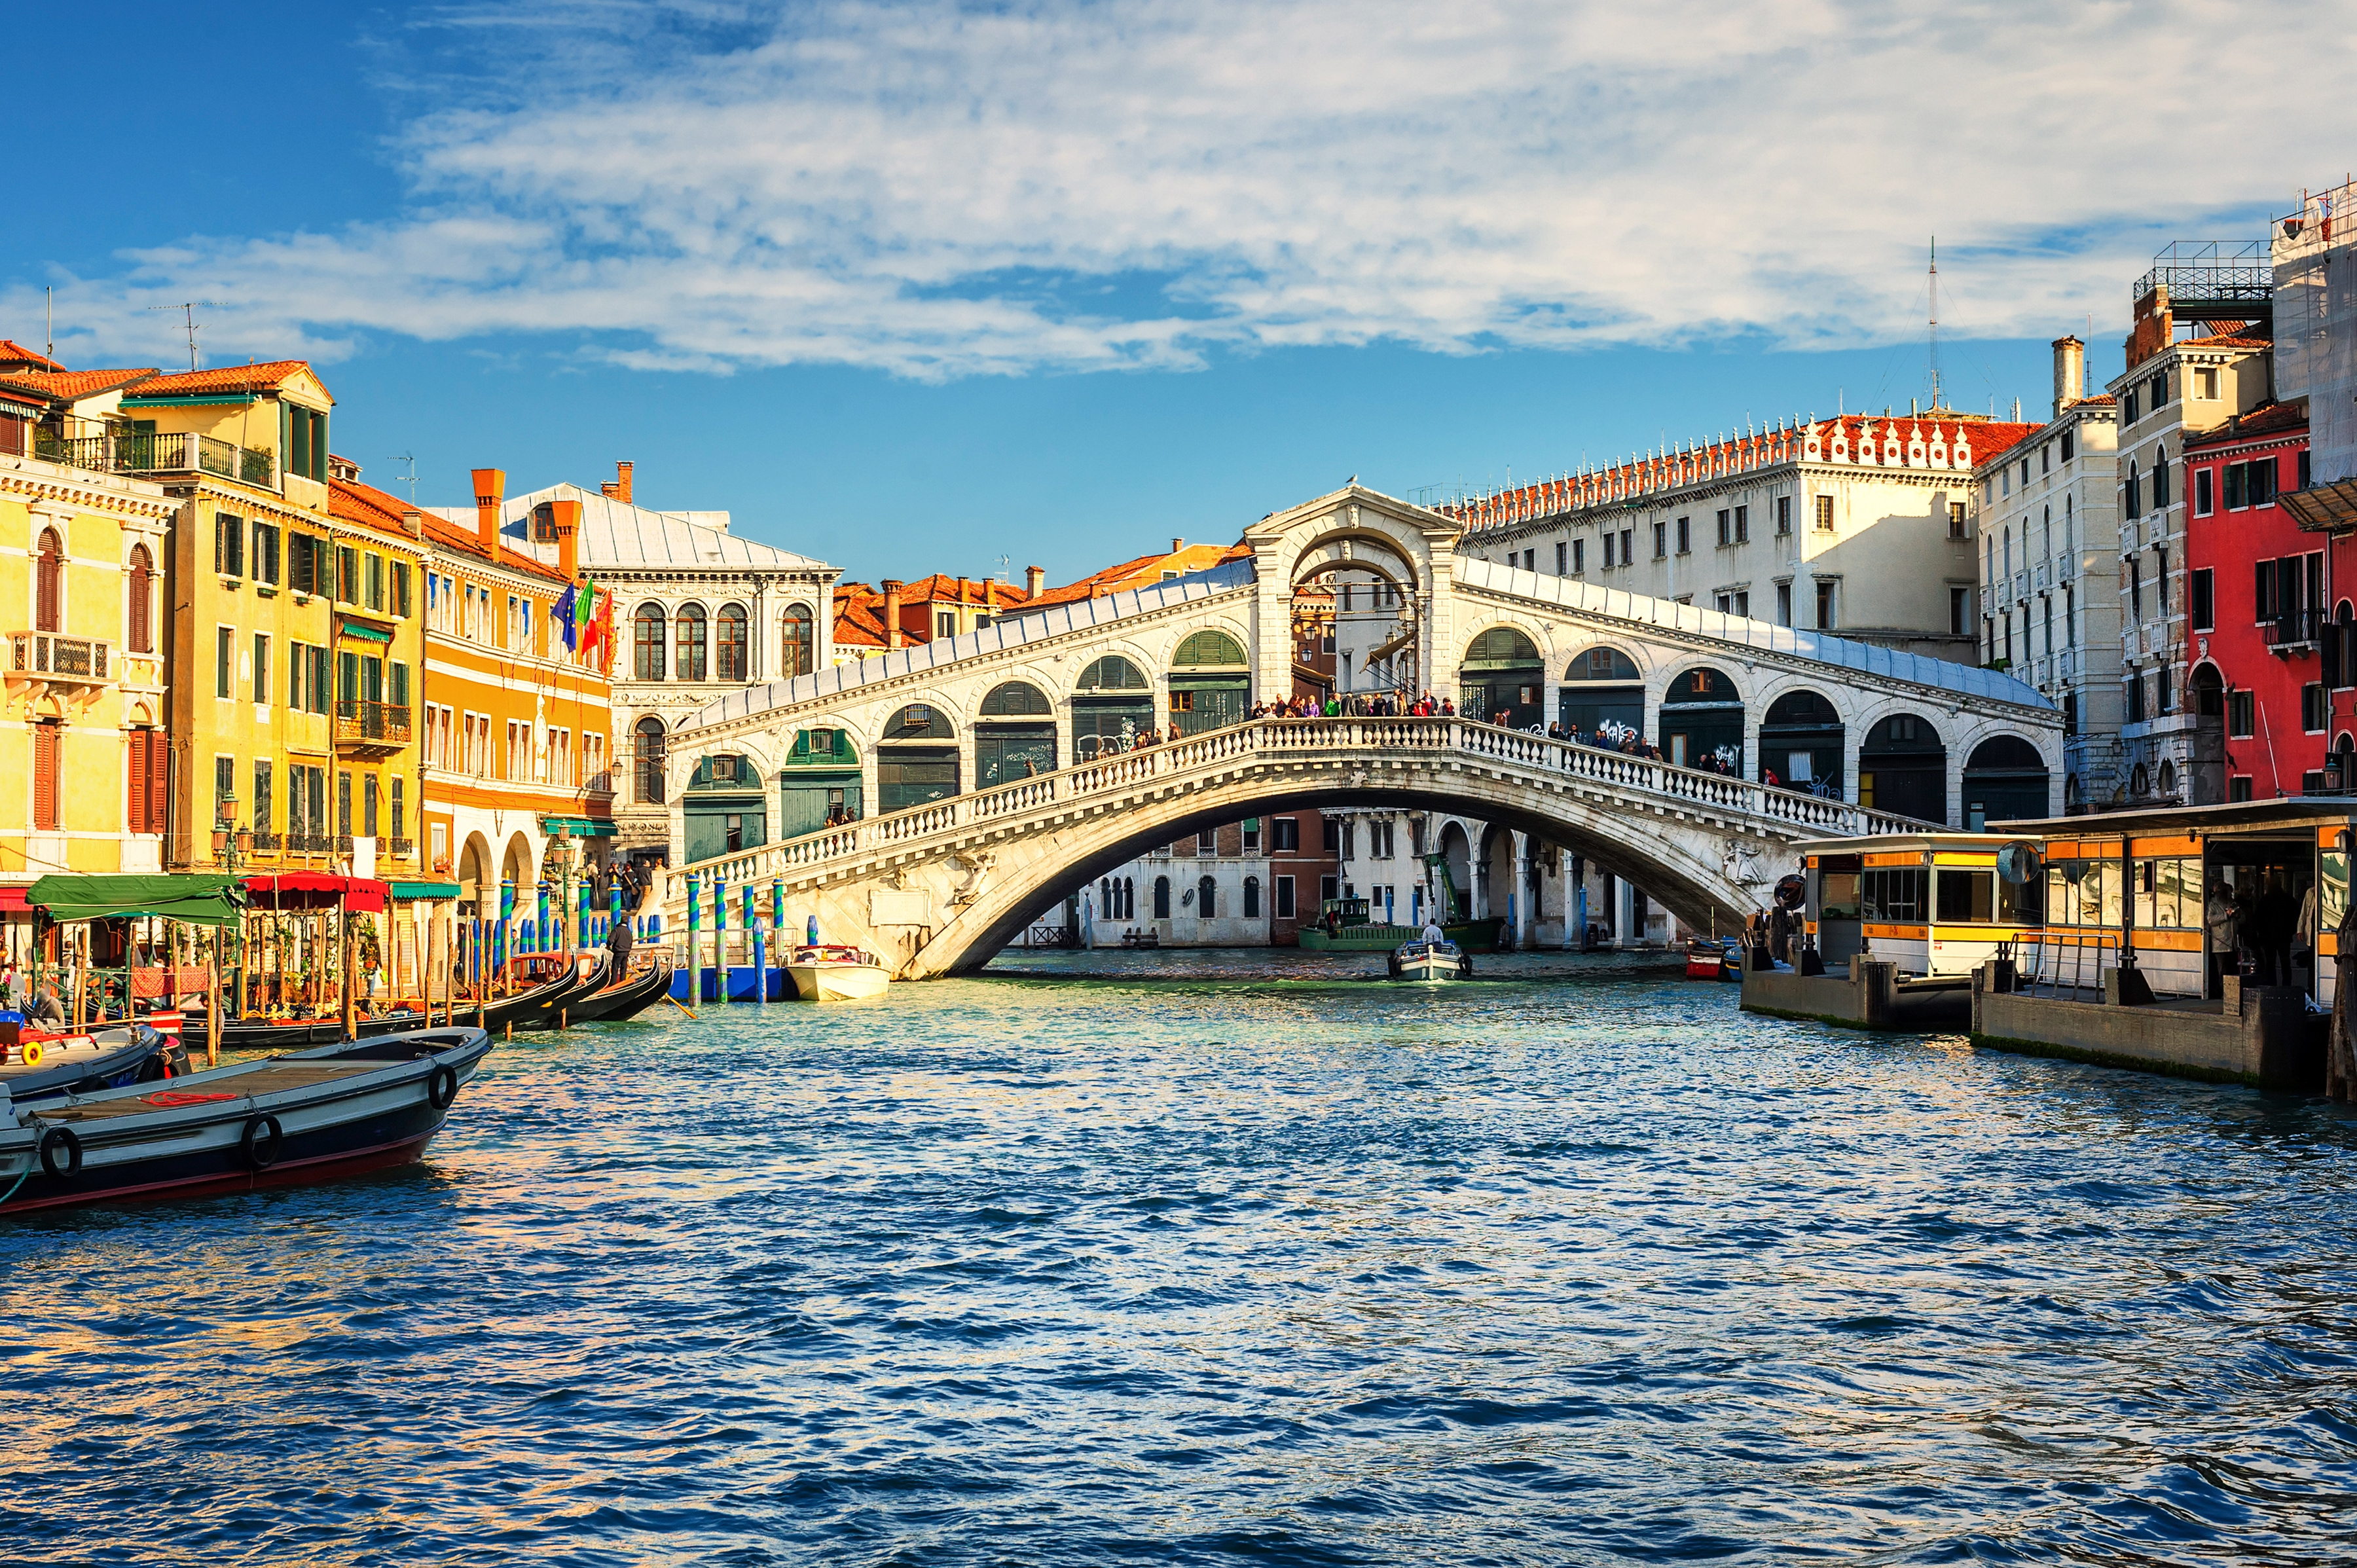 Fototapete »Grand Canal and Rialto bridge« günstig online kaufen